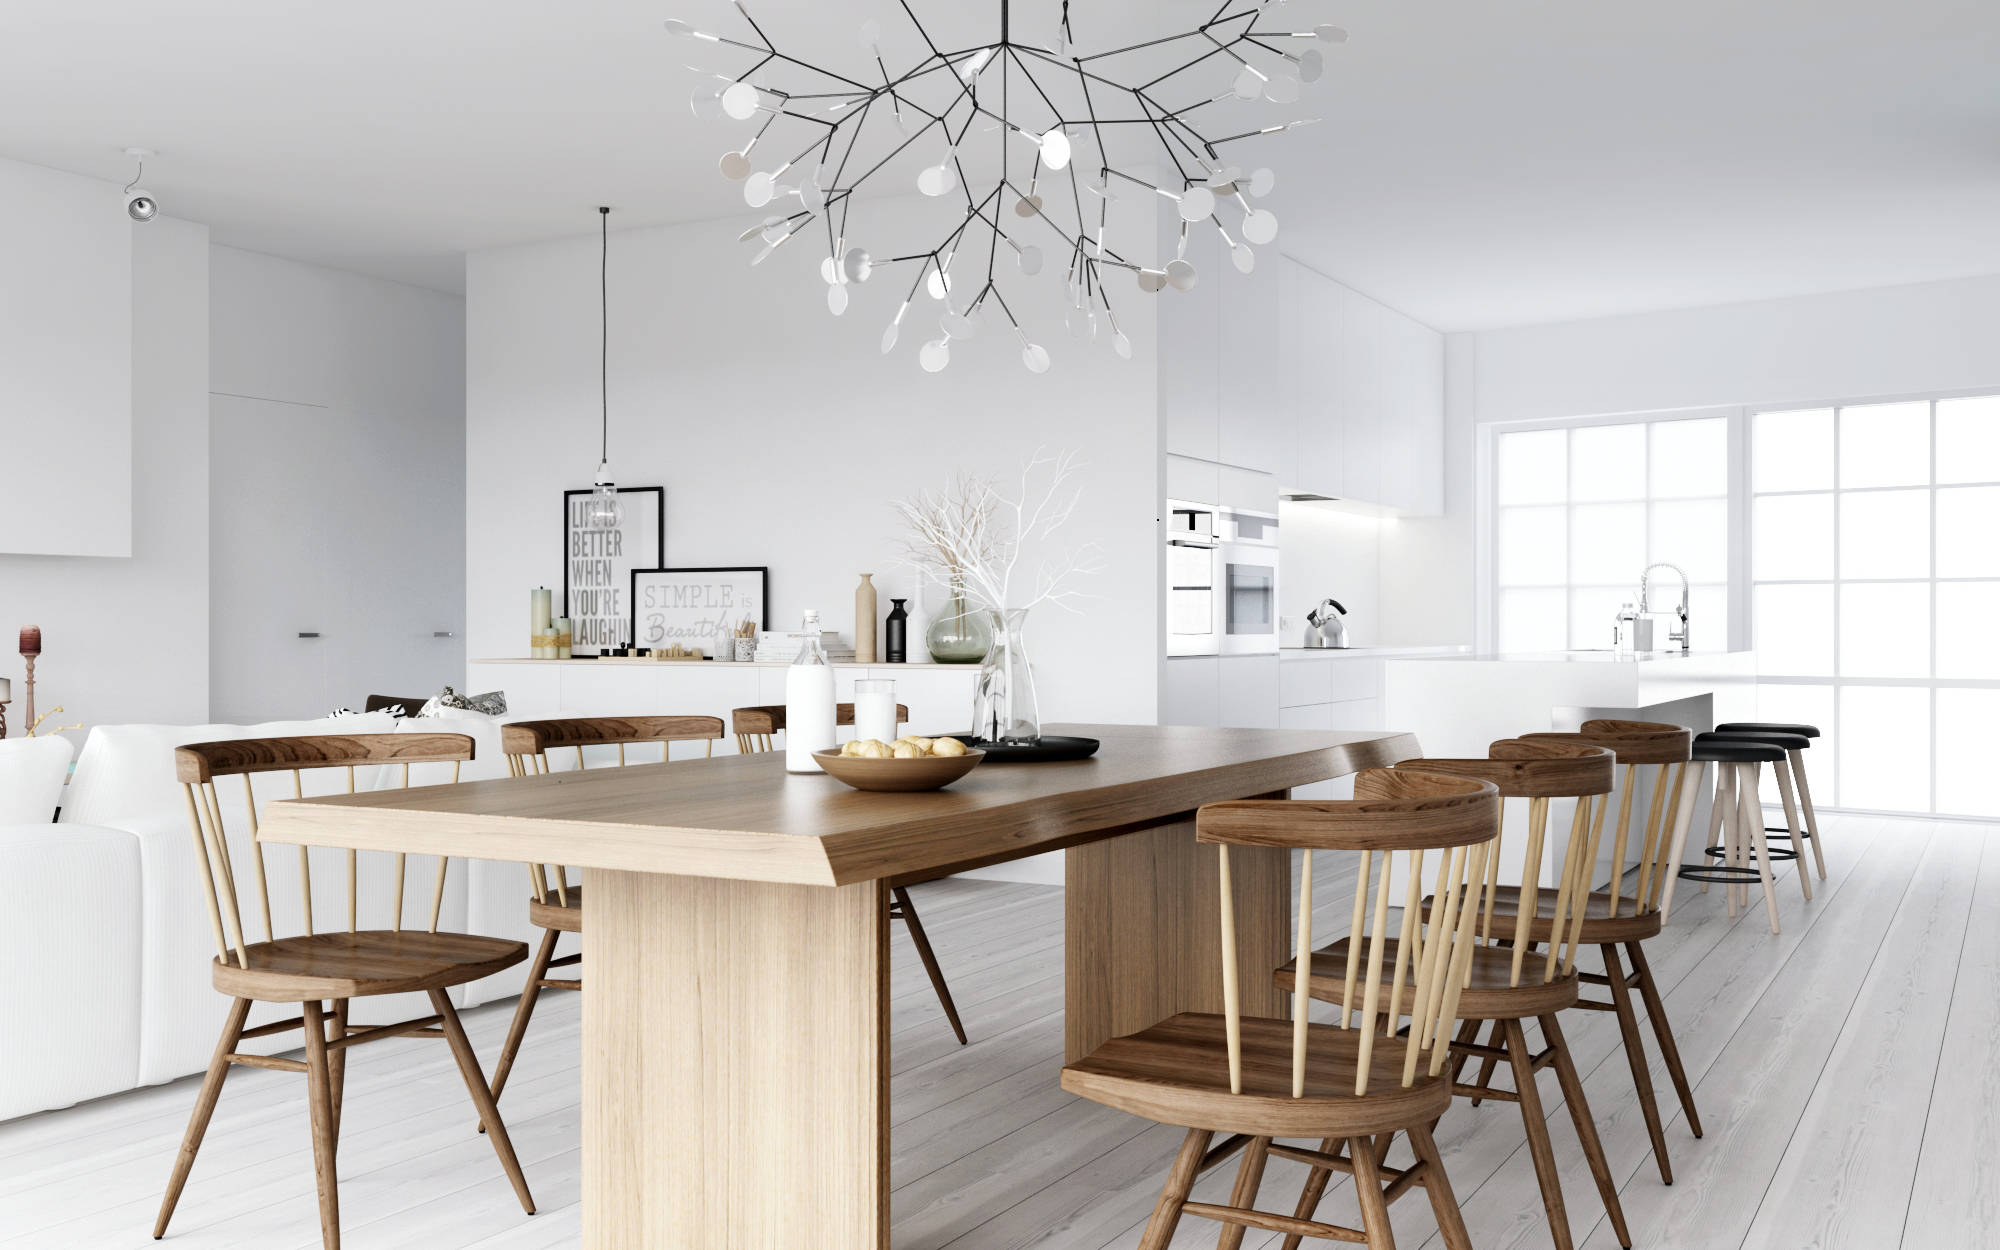 Atdesign wooden dining nordic style interior design ideas for Scandinavian design ideas